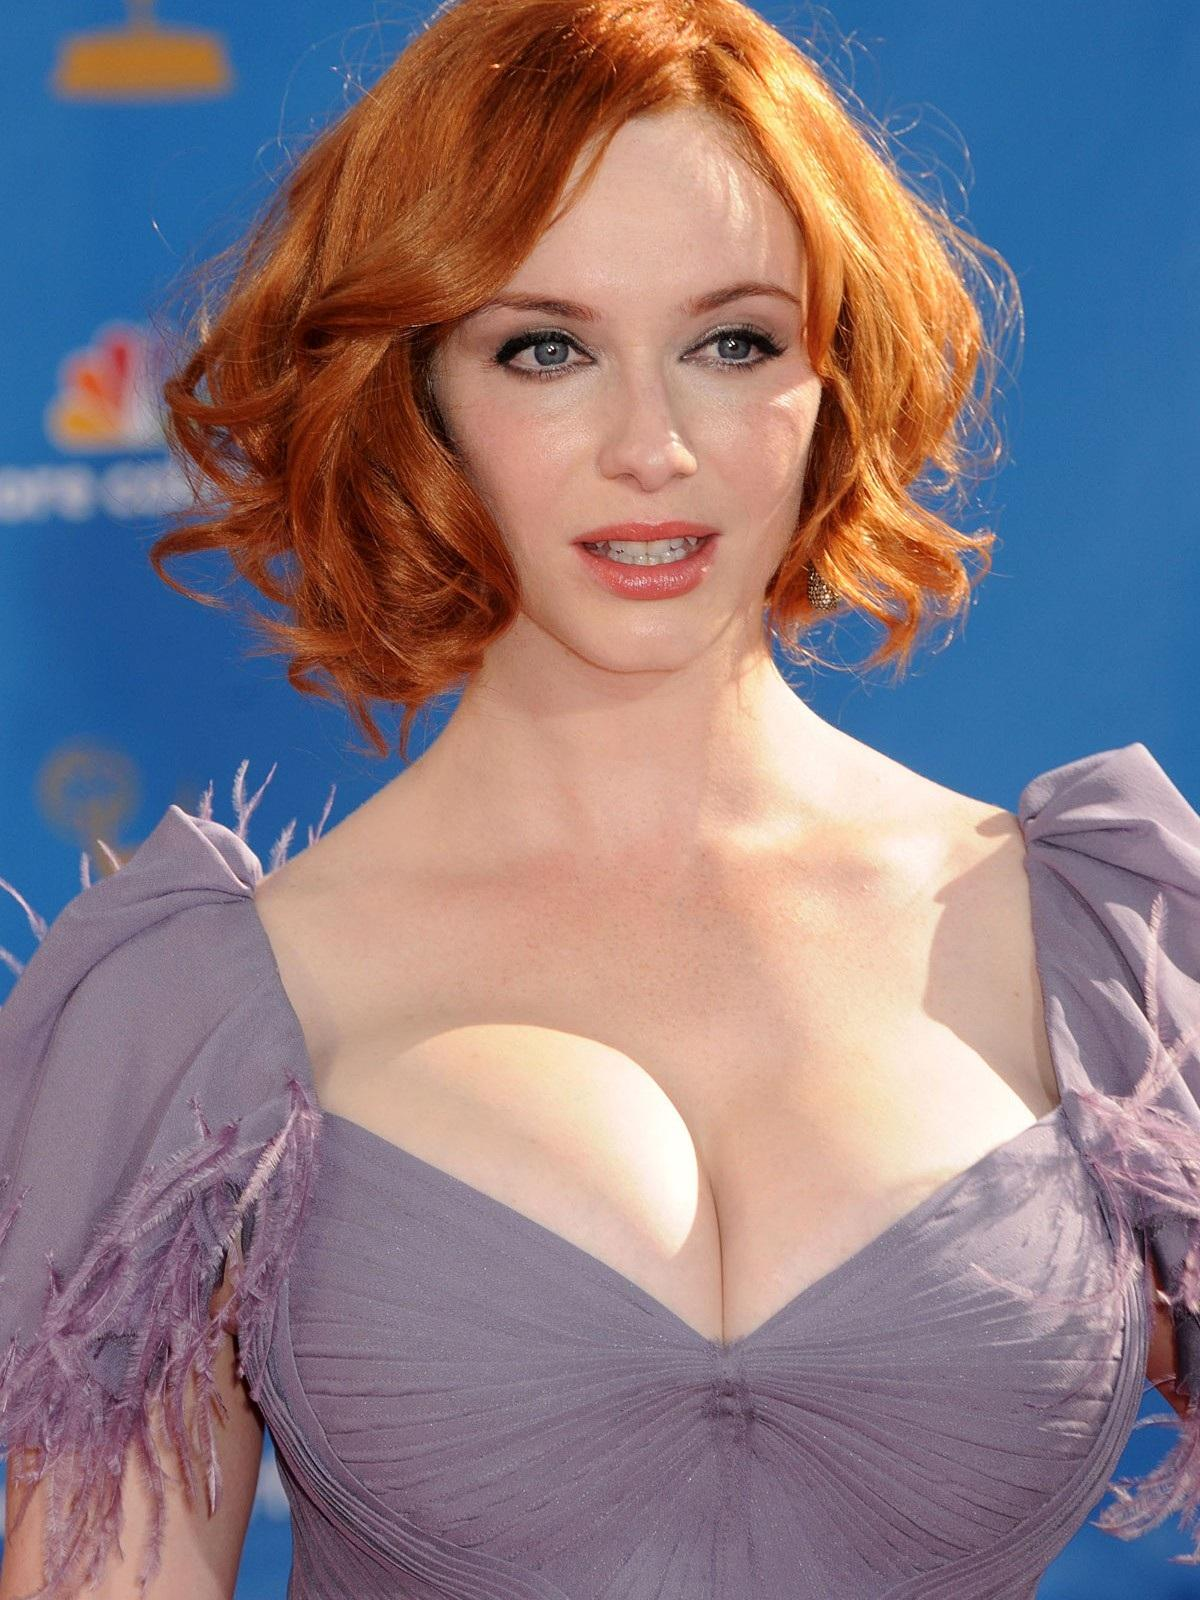 christina-hendricks-bf-db-christina-hend